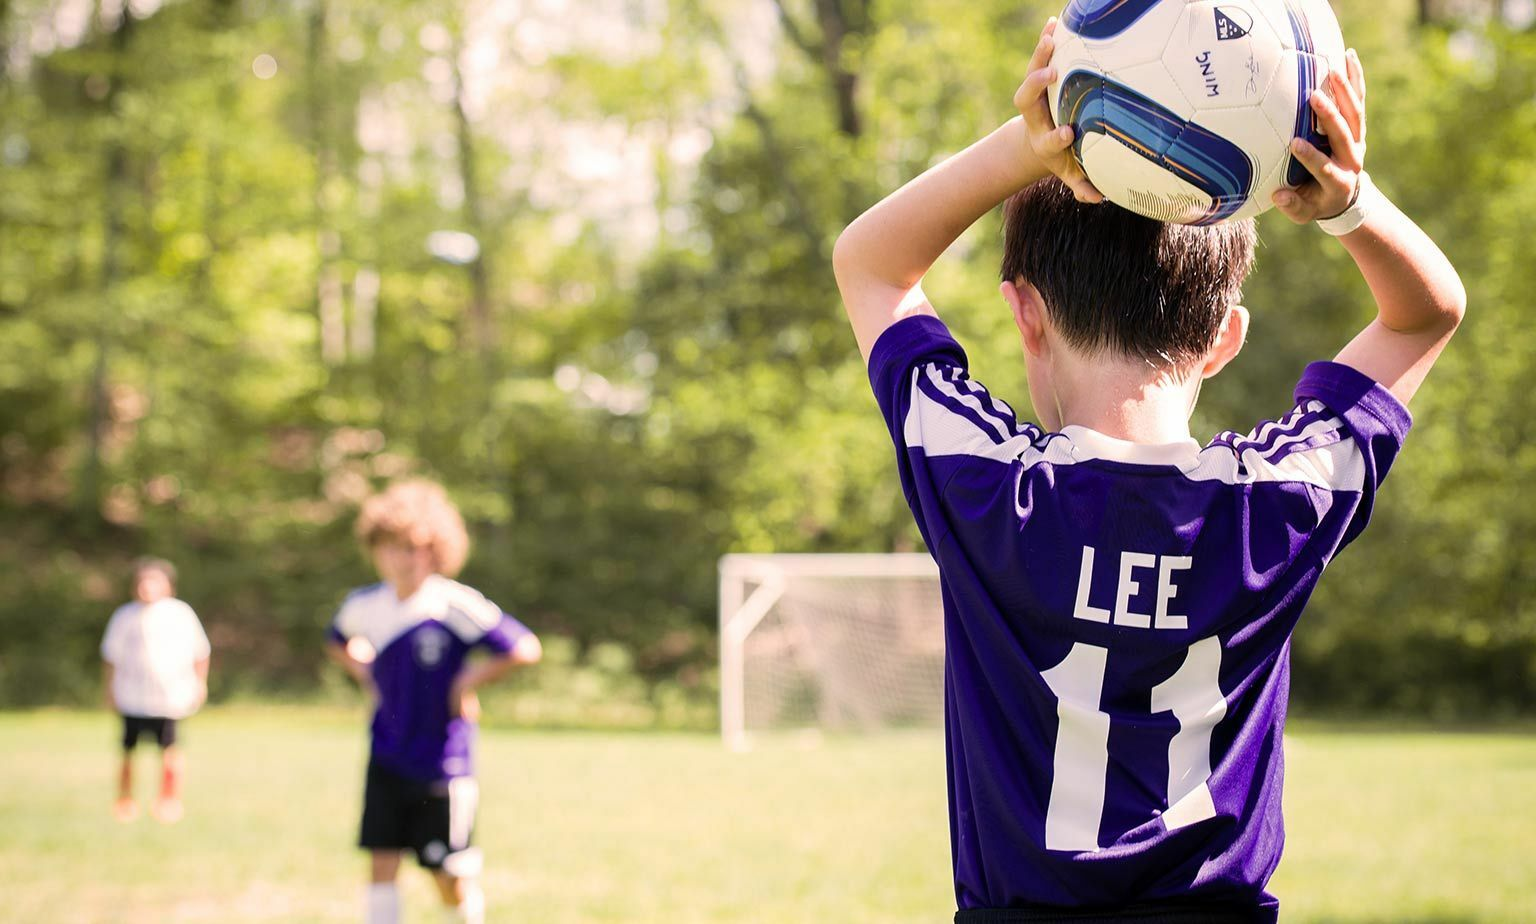 Gear Up for Fall Team Sports